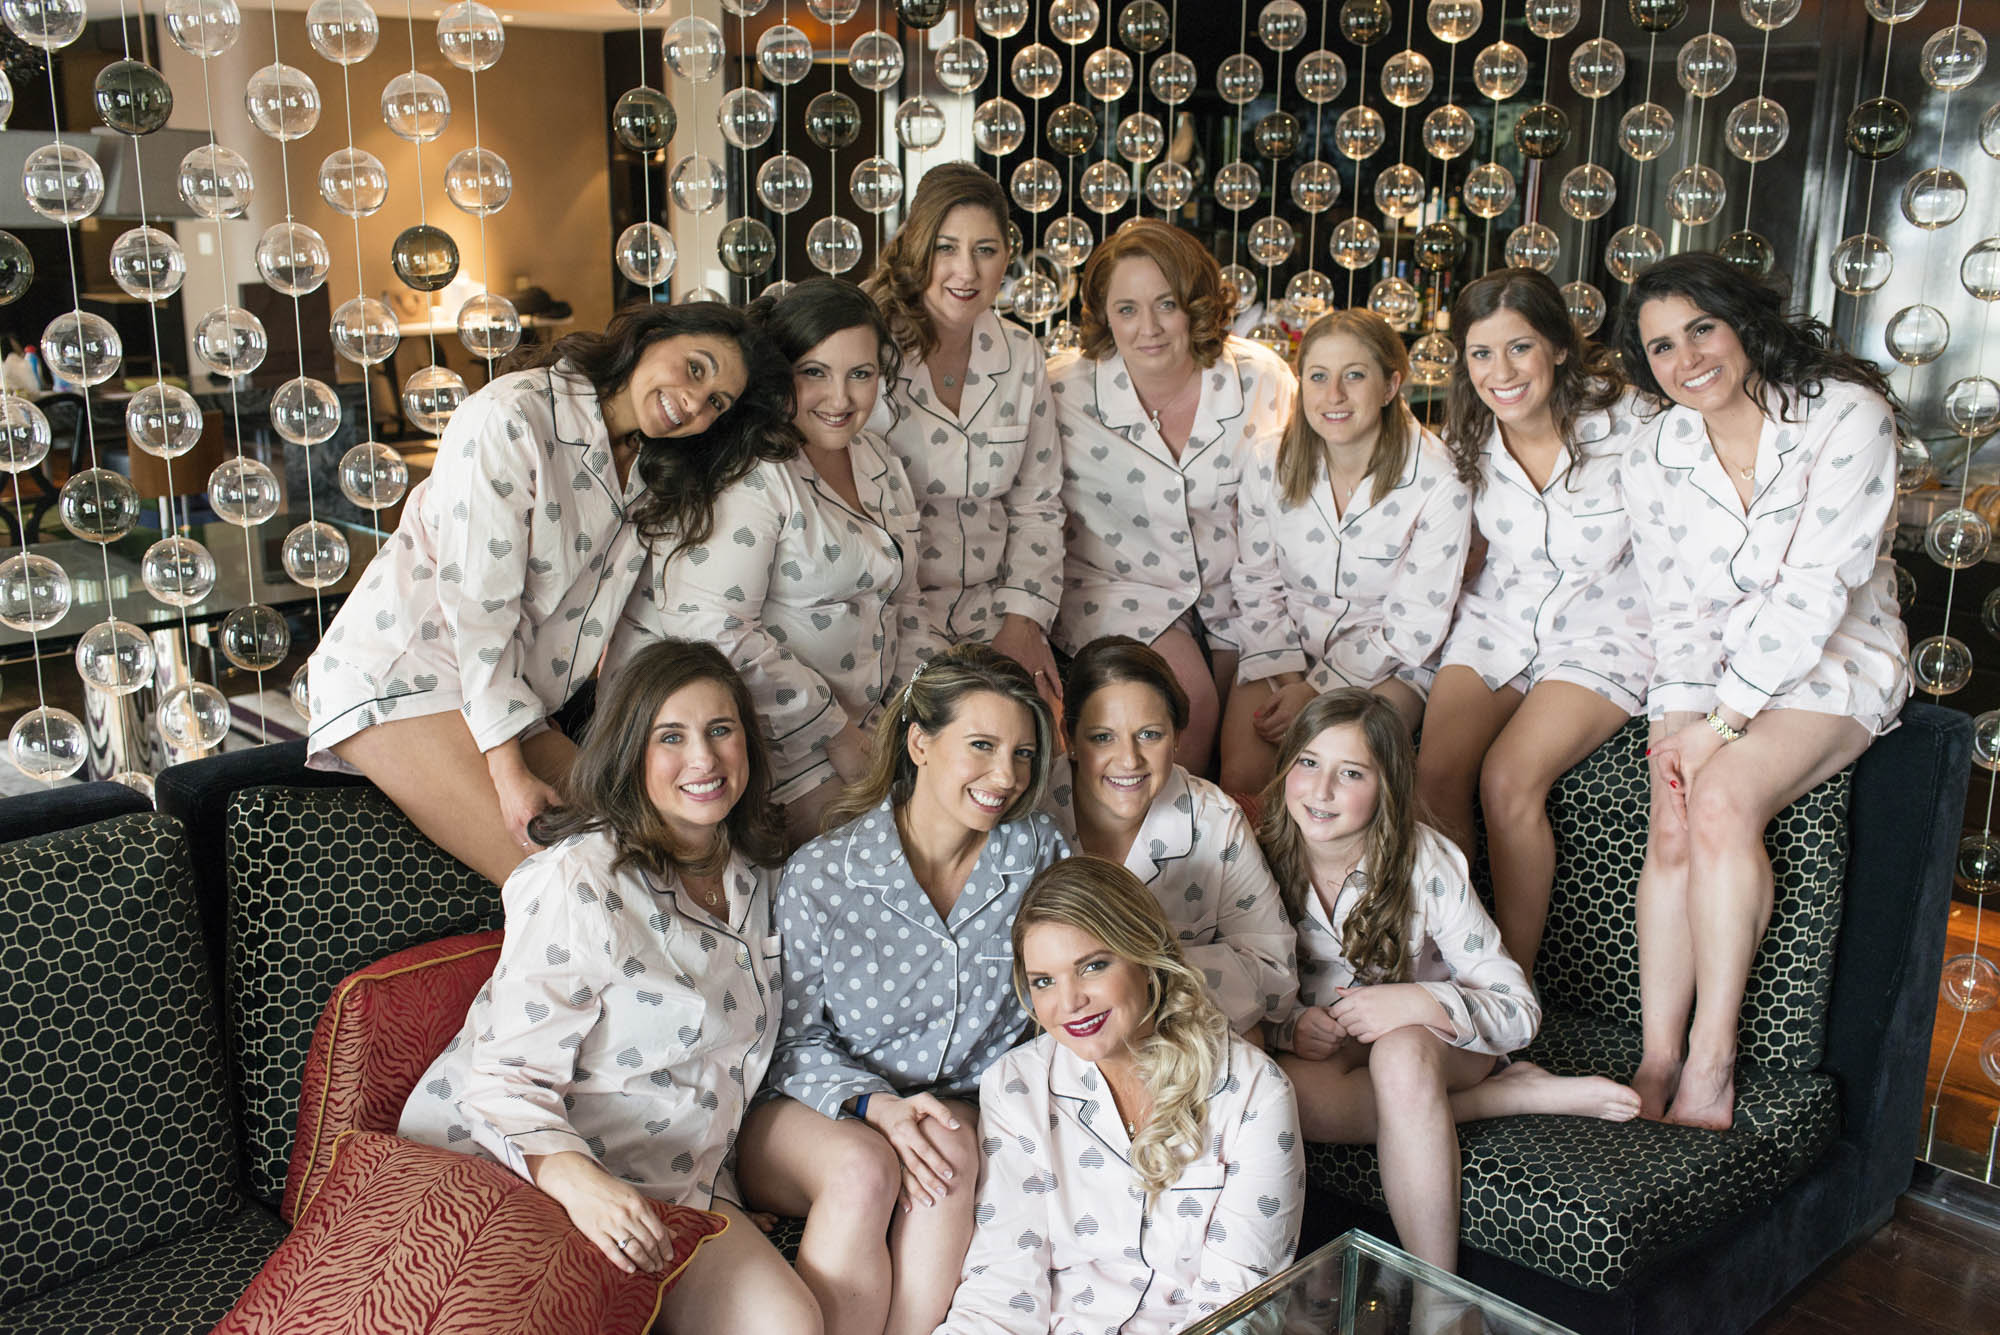 Bridesmaids in matching pajamas, ready to get their gifts! Las Vegas Wedding Planner www.andreaeppolitoevents.com. Image by www.altf.com.